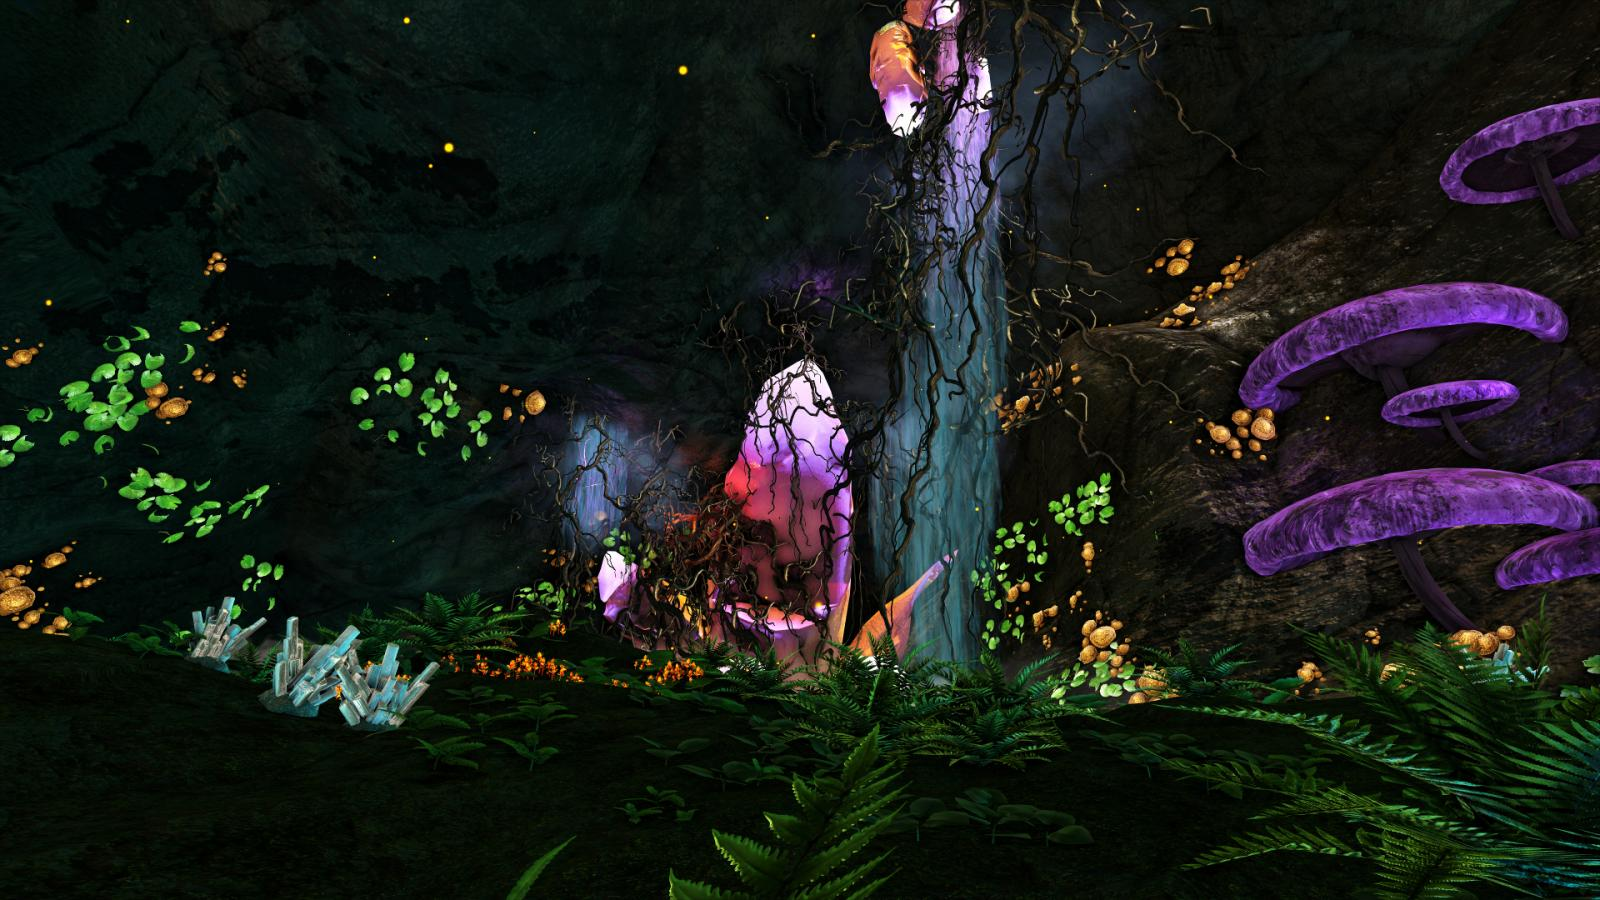 large.5984883373377_SgtWest-TheBeautyofCrystalIsles-SuperResolution.jpg